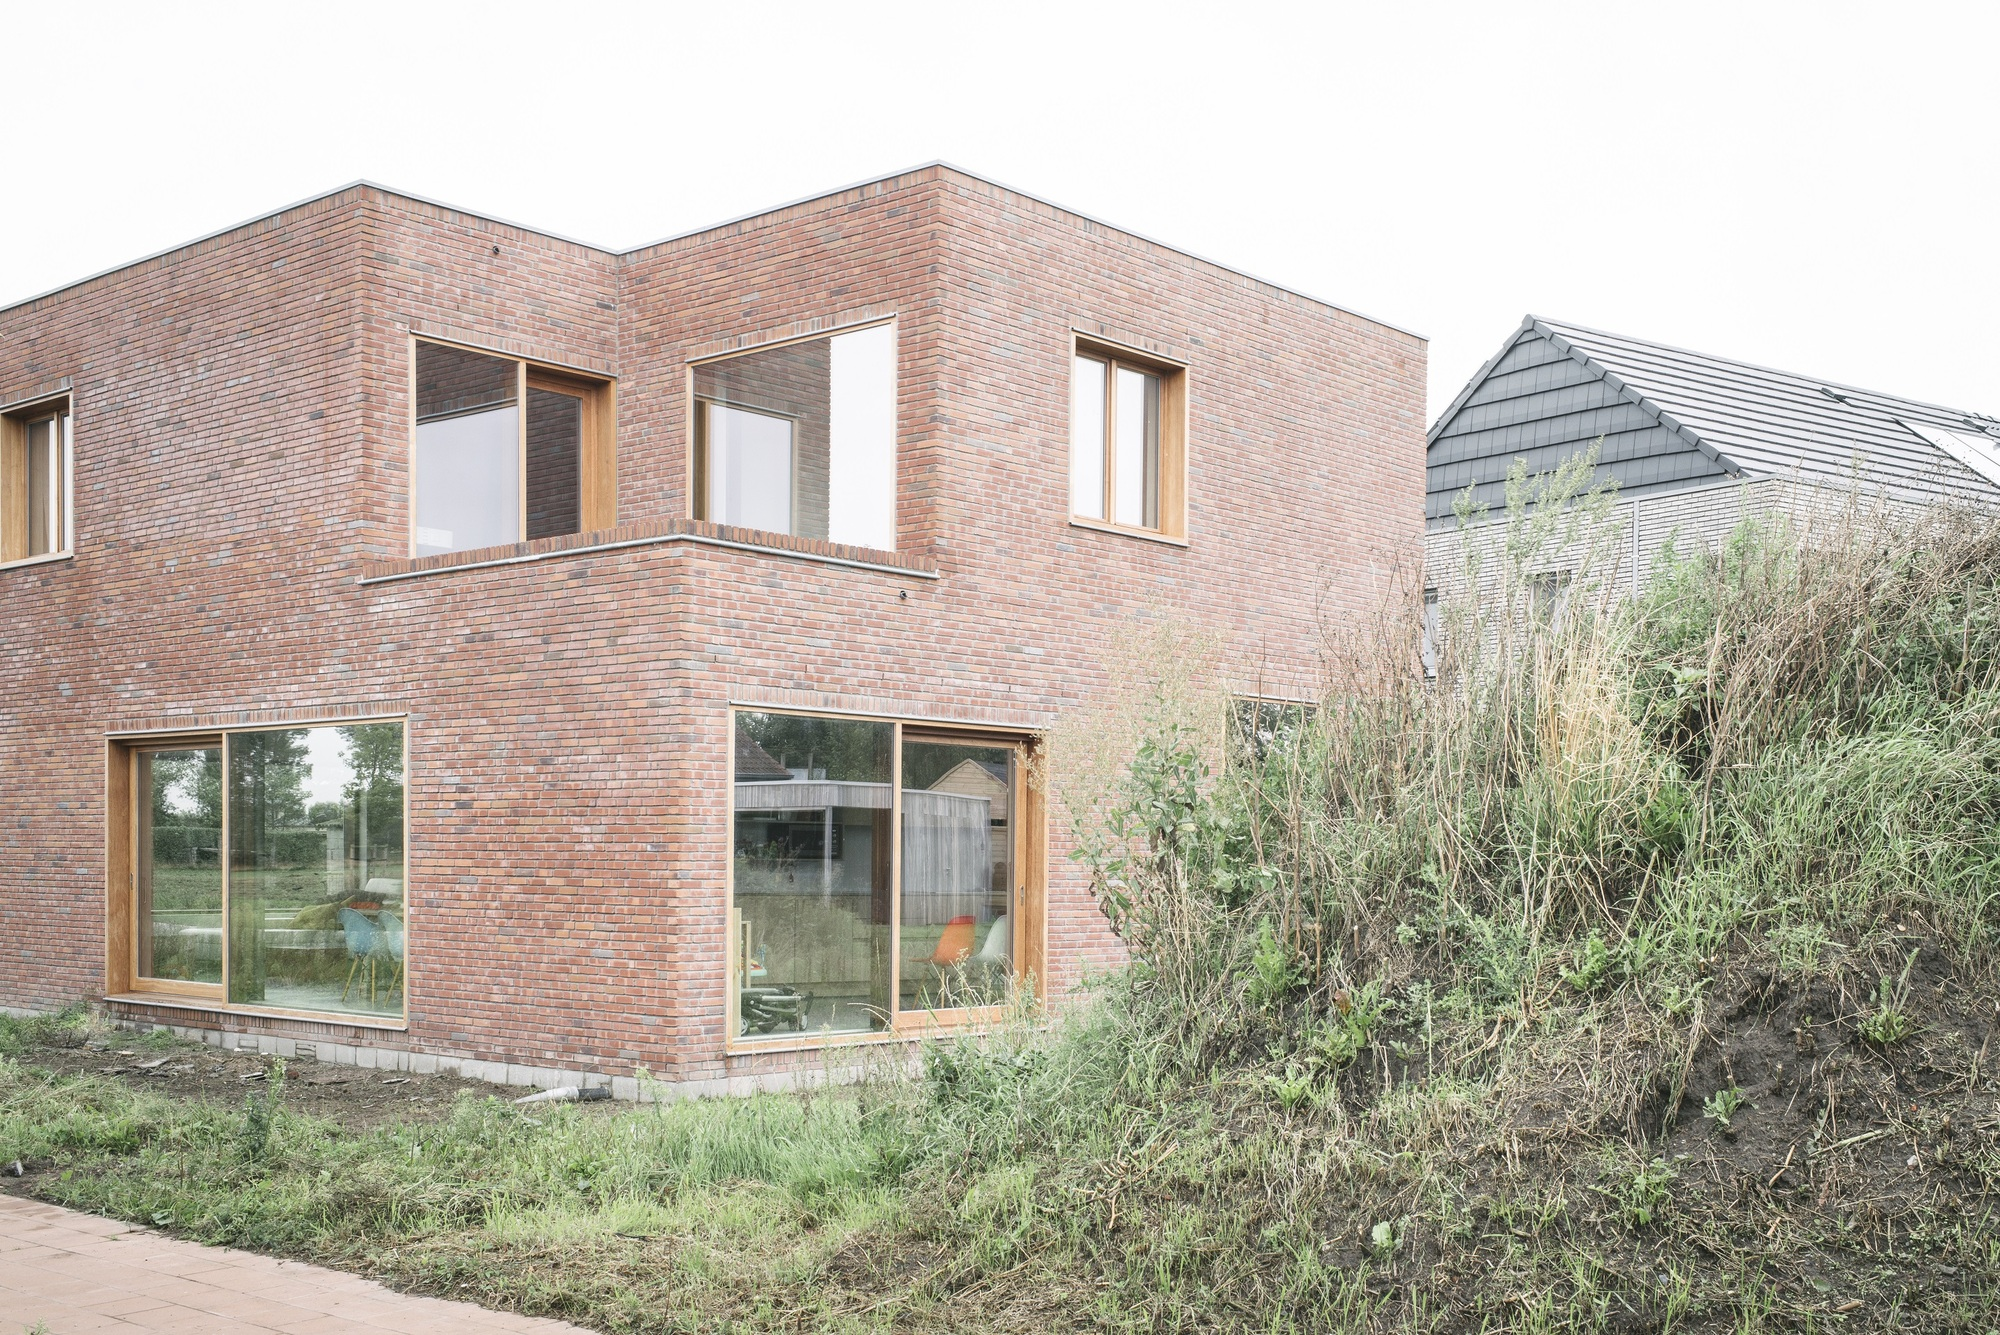 Gallery of house cm bultynck kindt architecten 1 - Modern brick decorated houses ...